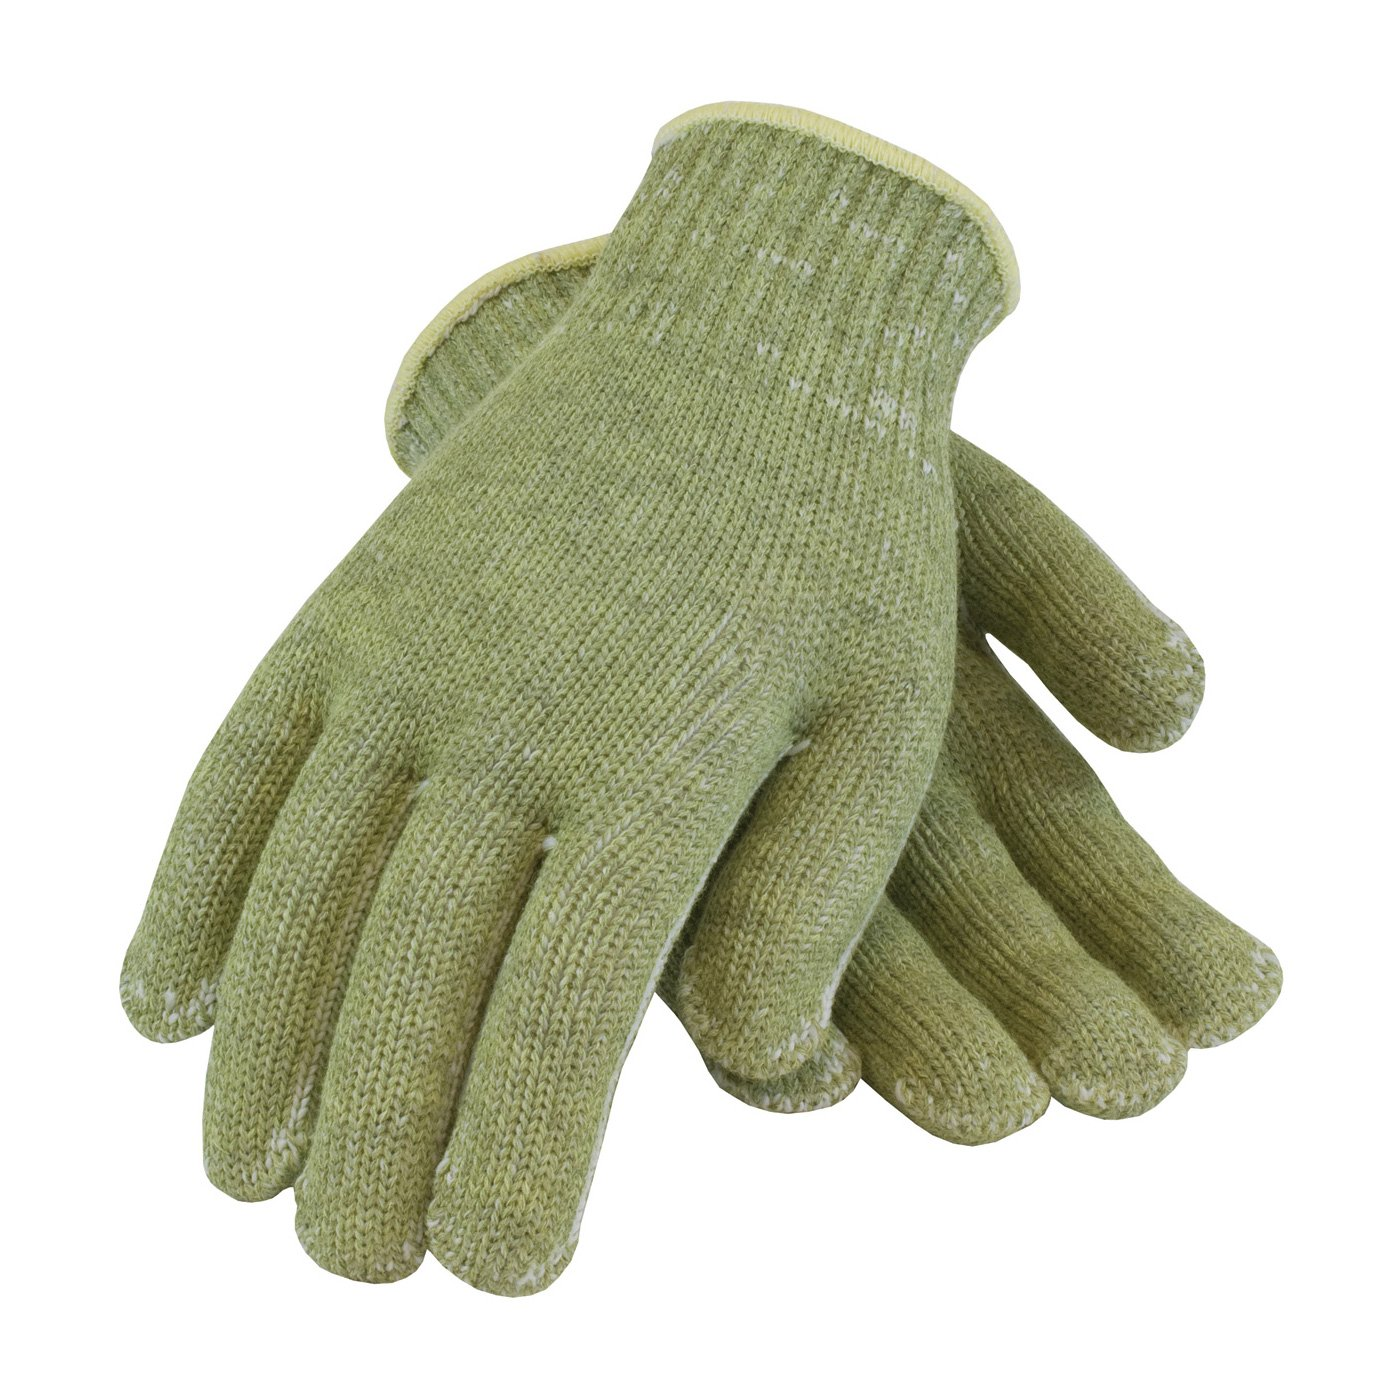 Kut-Gard 07-KA730/XL Seamless Knit ACP/Kevlar/Glass Glove with Polyester Liner, Medium Weight